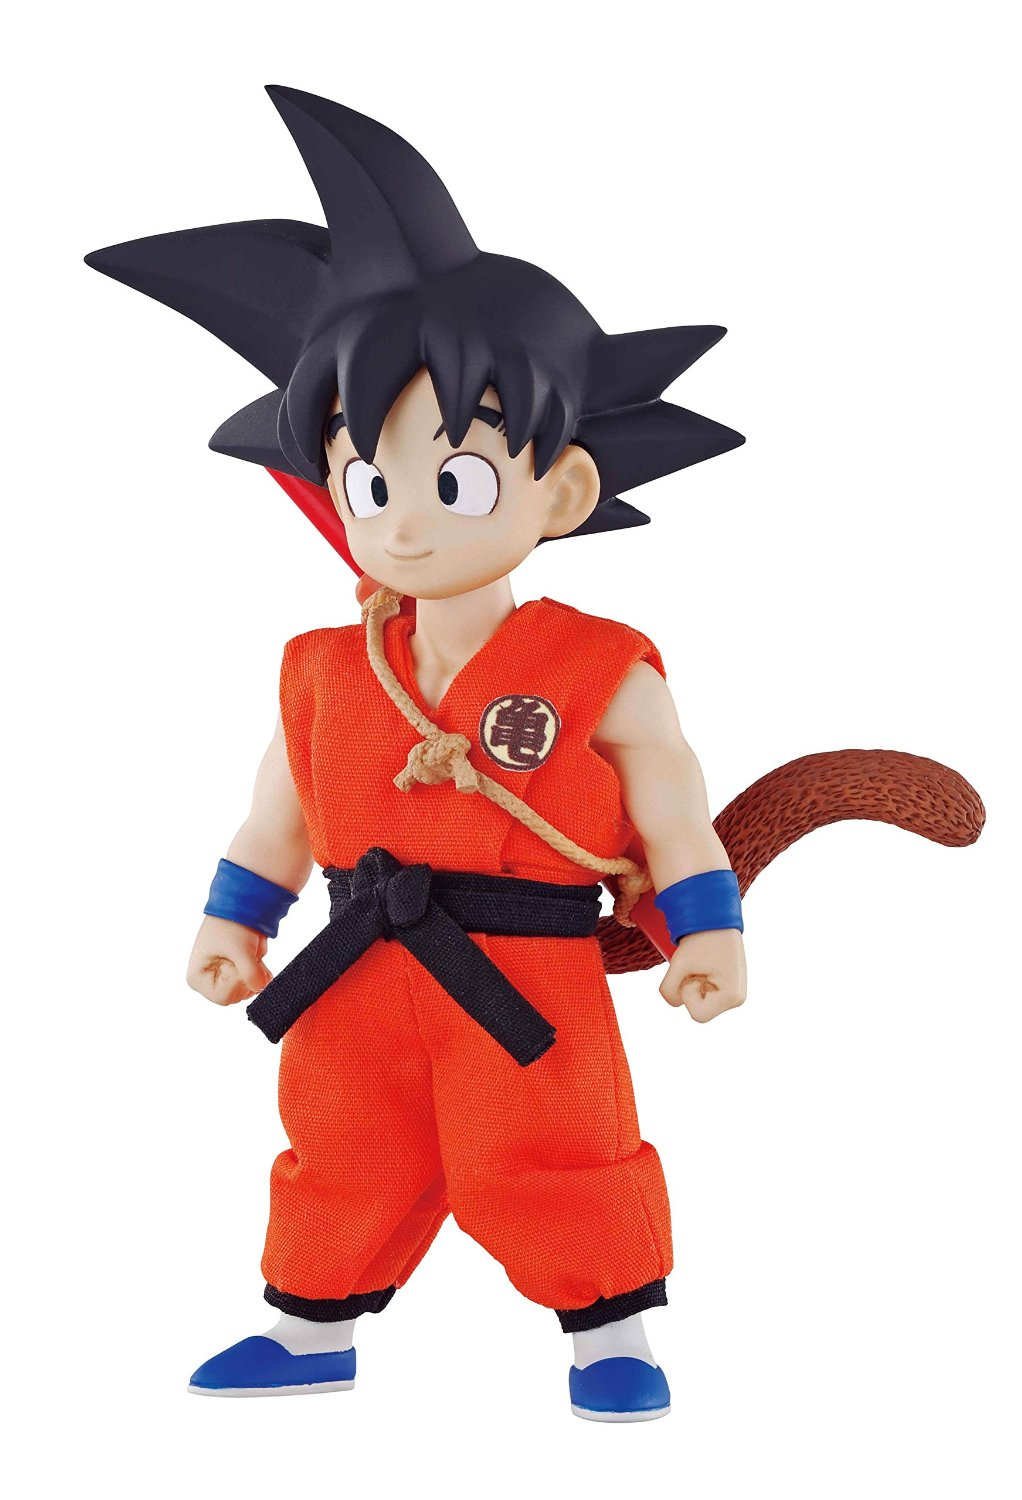 Dimension of Dragon Ball Kid Son Goku 10cm